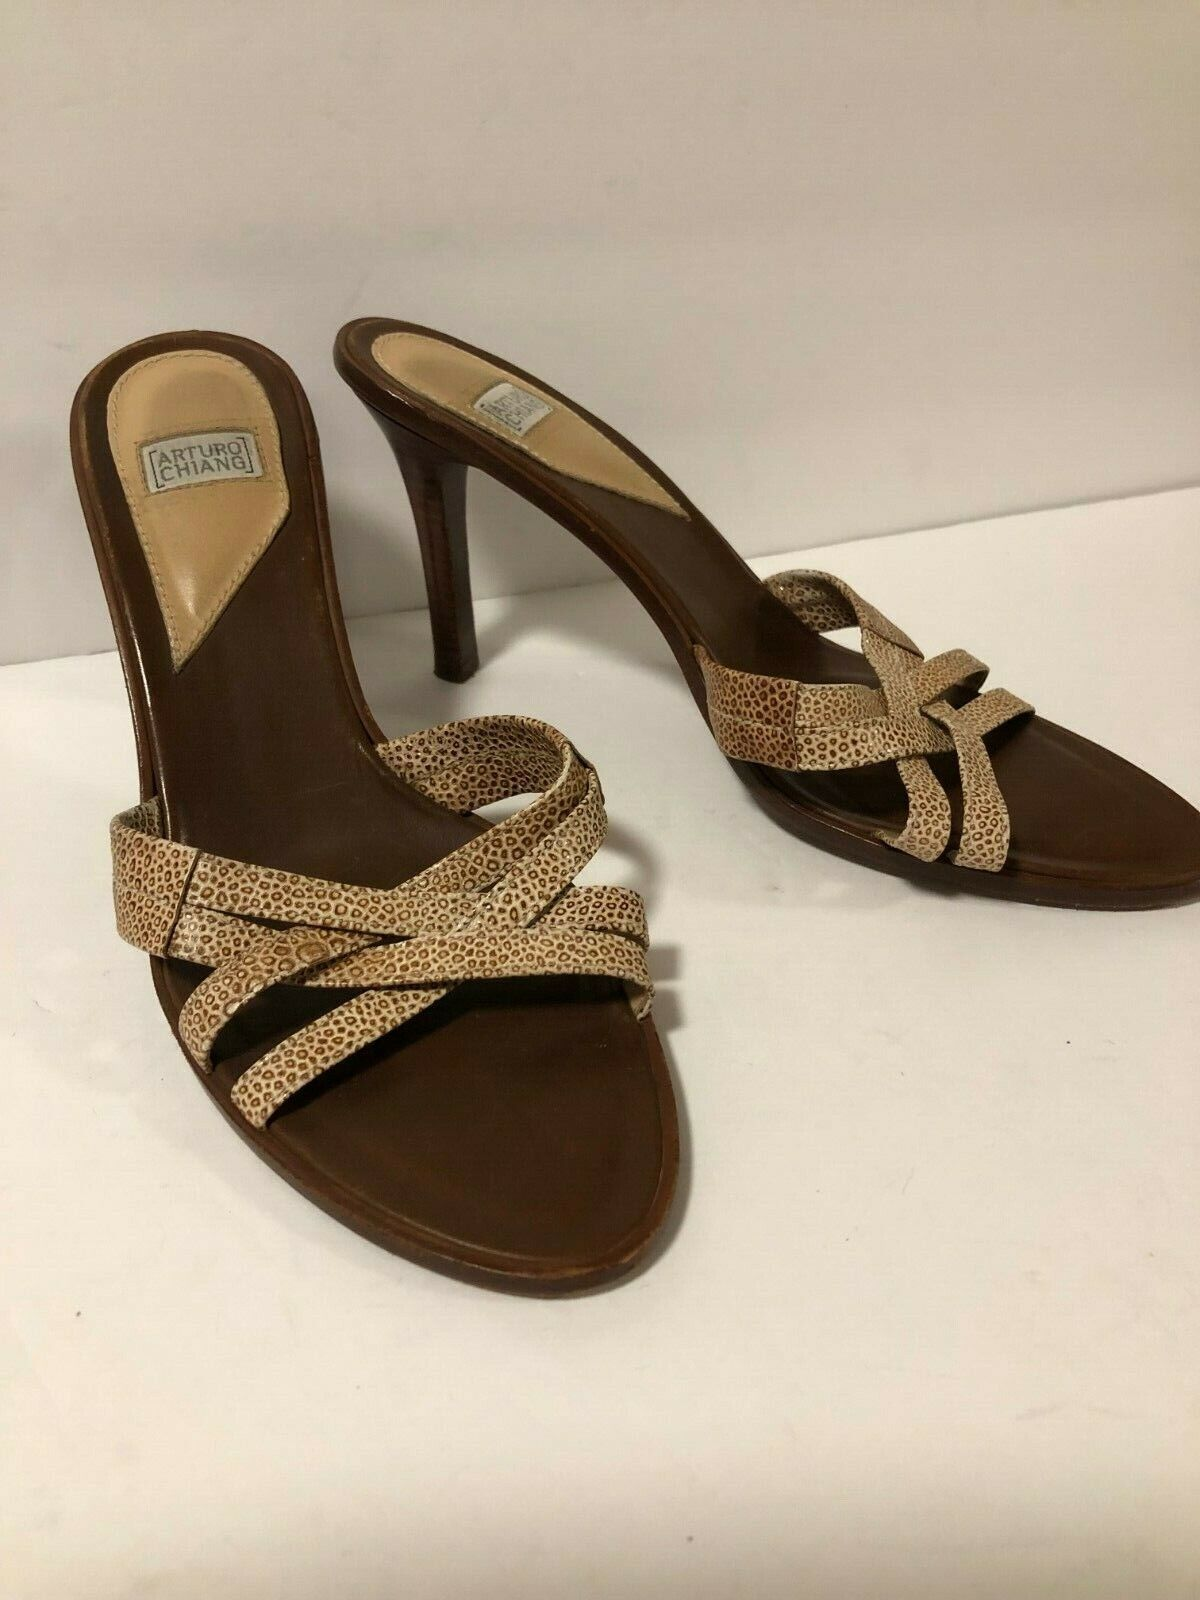 Arturo Chiang Sandals Mules Stacked Heels Leather Stiletto Beige Brown Size 8 M